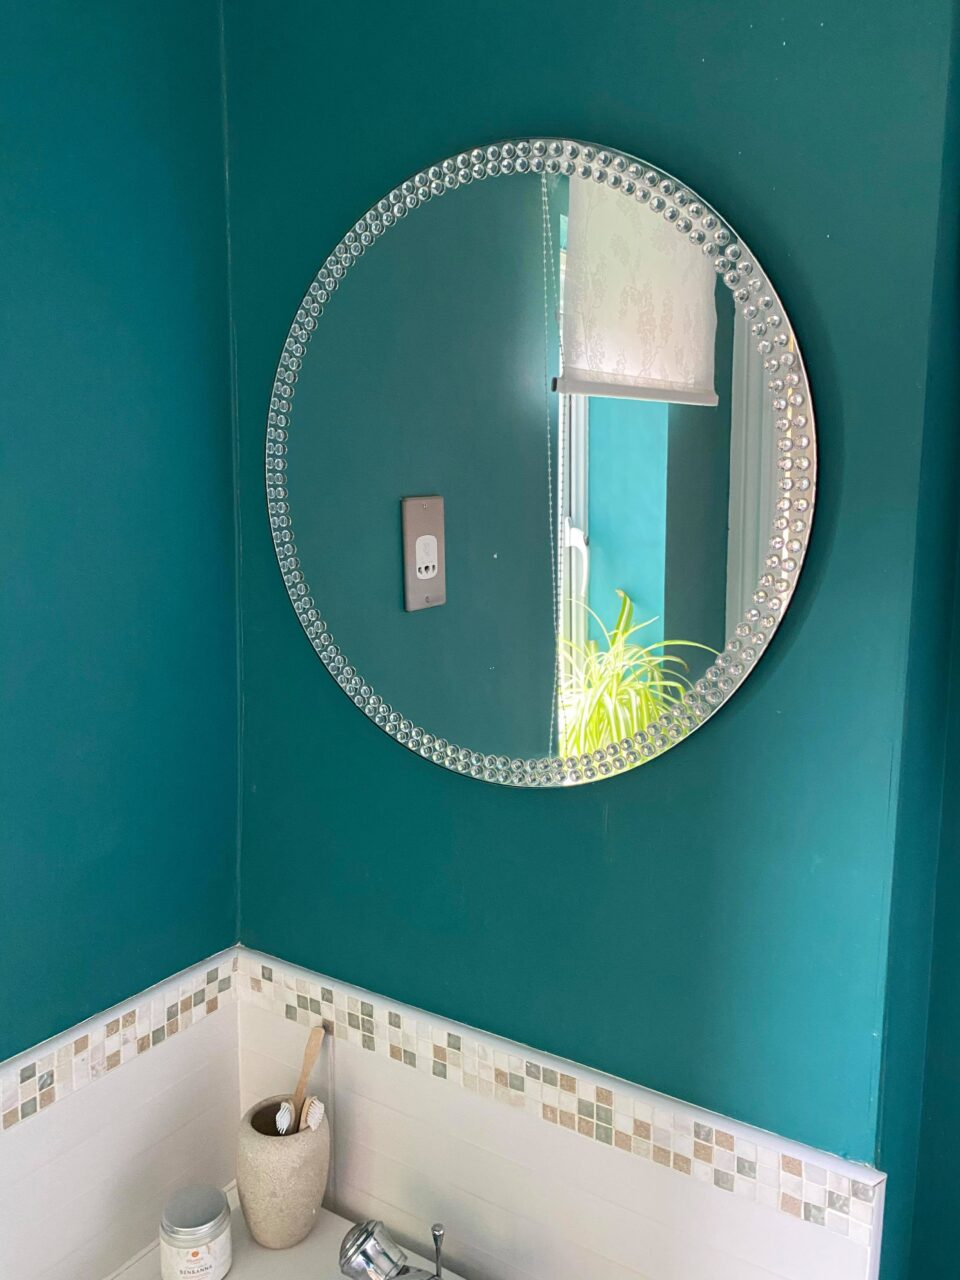 the mirror in our updated bathroom